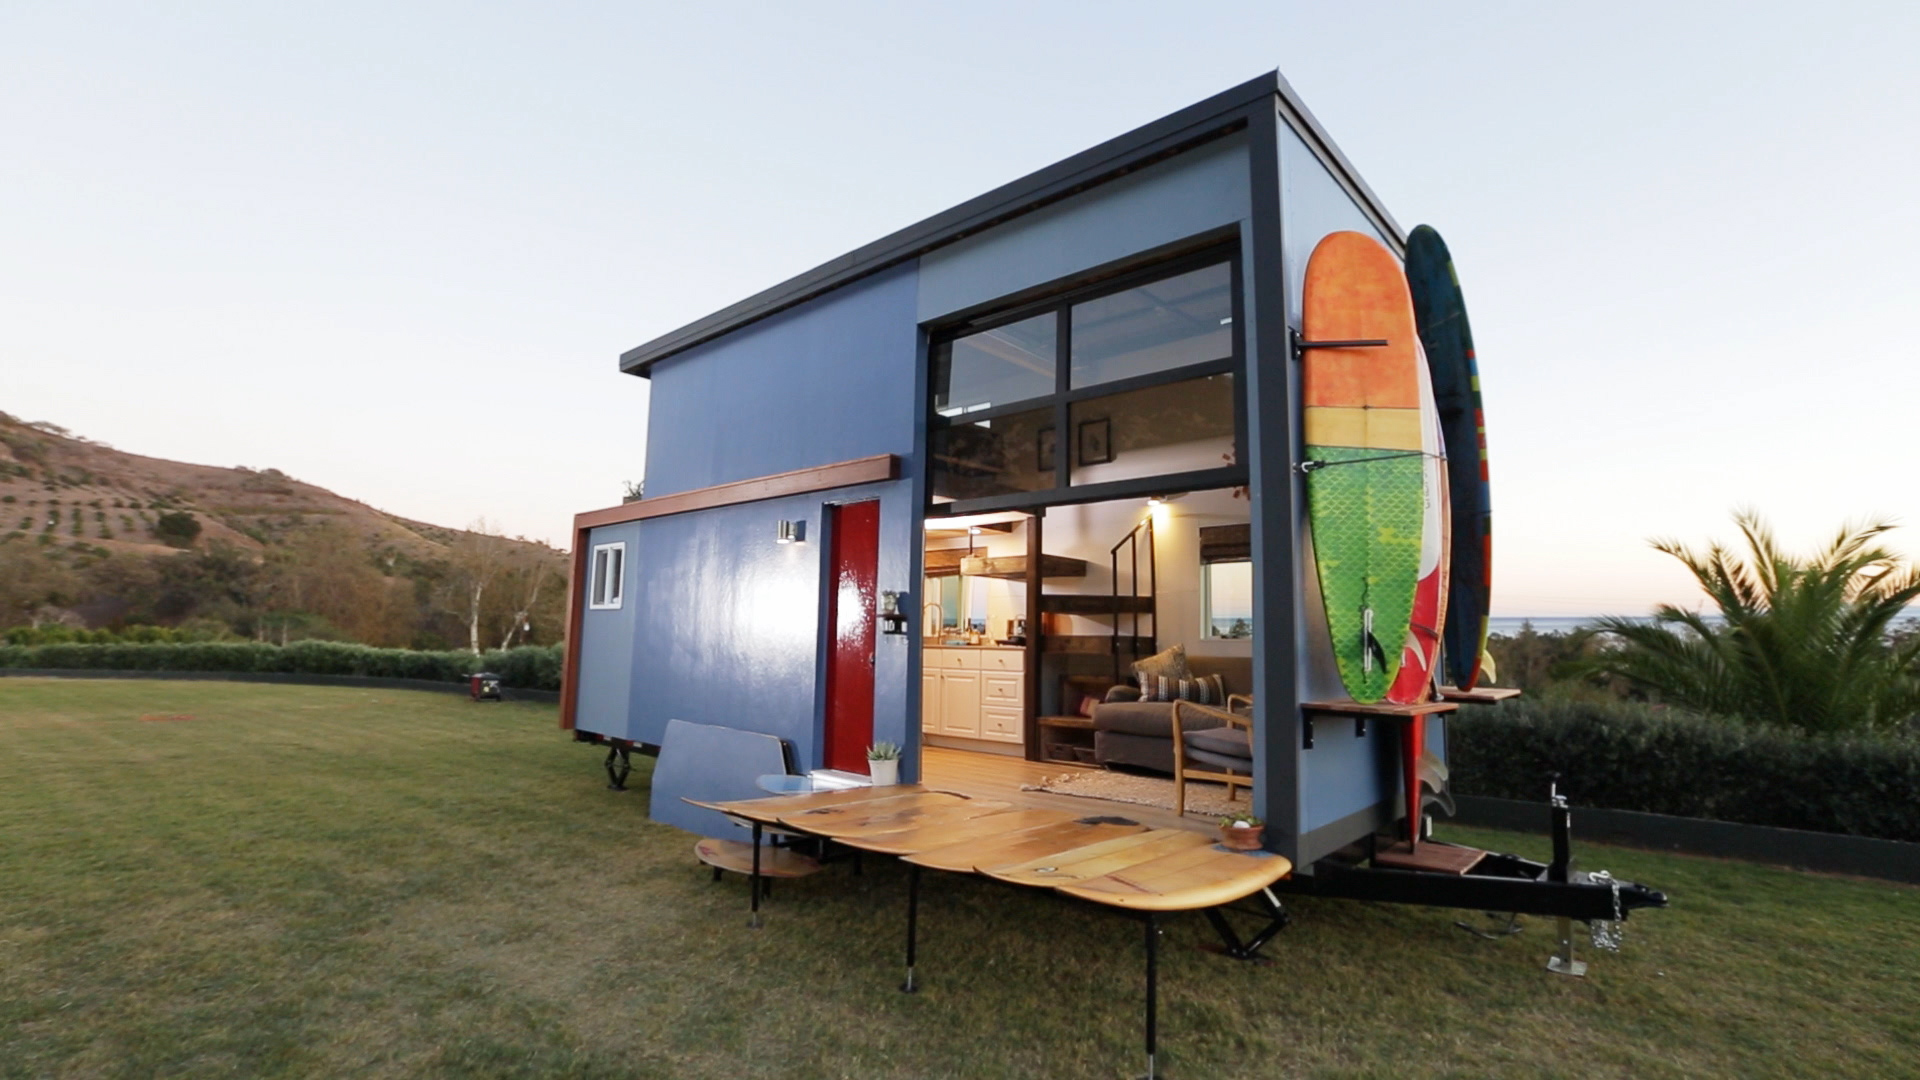 300 Sq. Ft. Surf Shack Chic